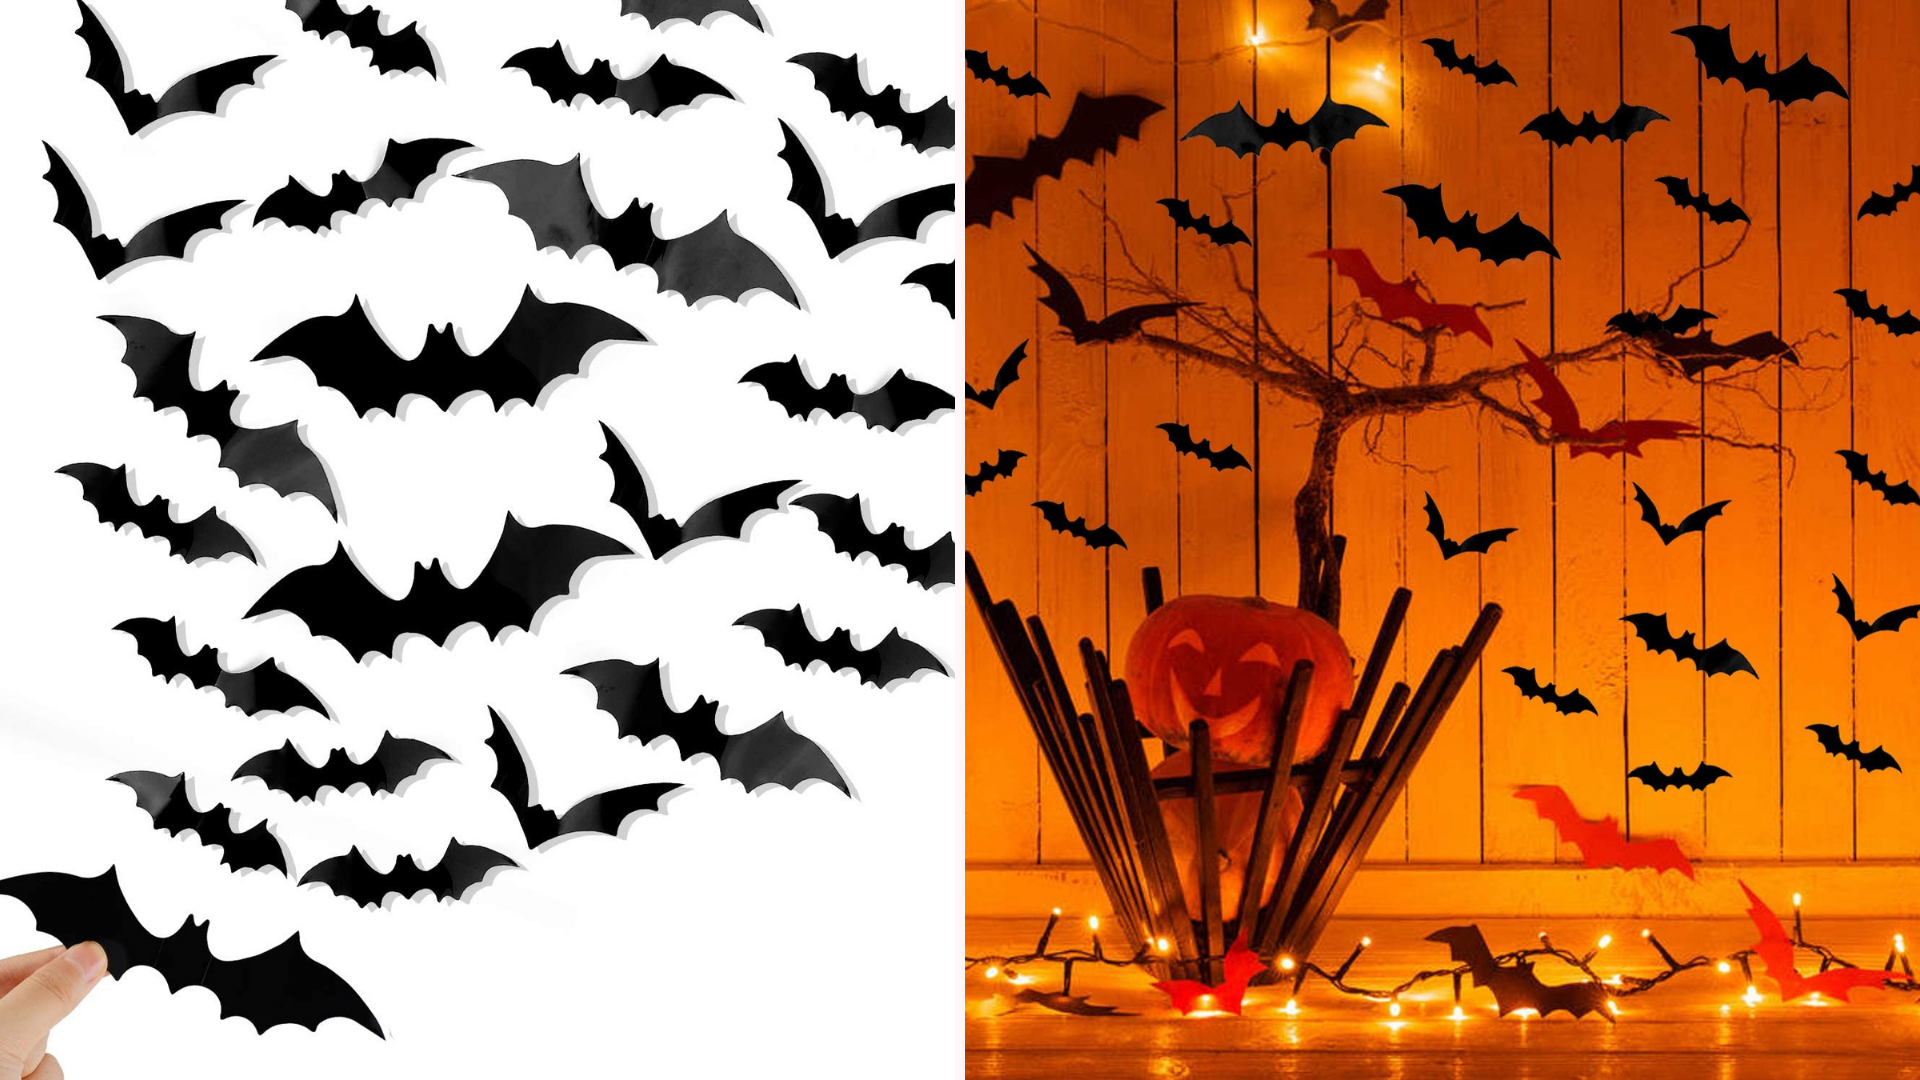 Bats are placed on a wall around a pumpkin.